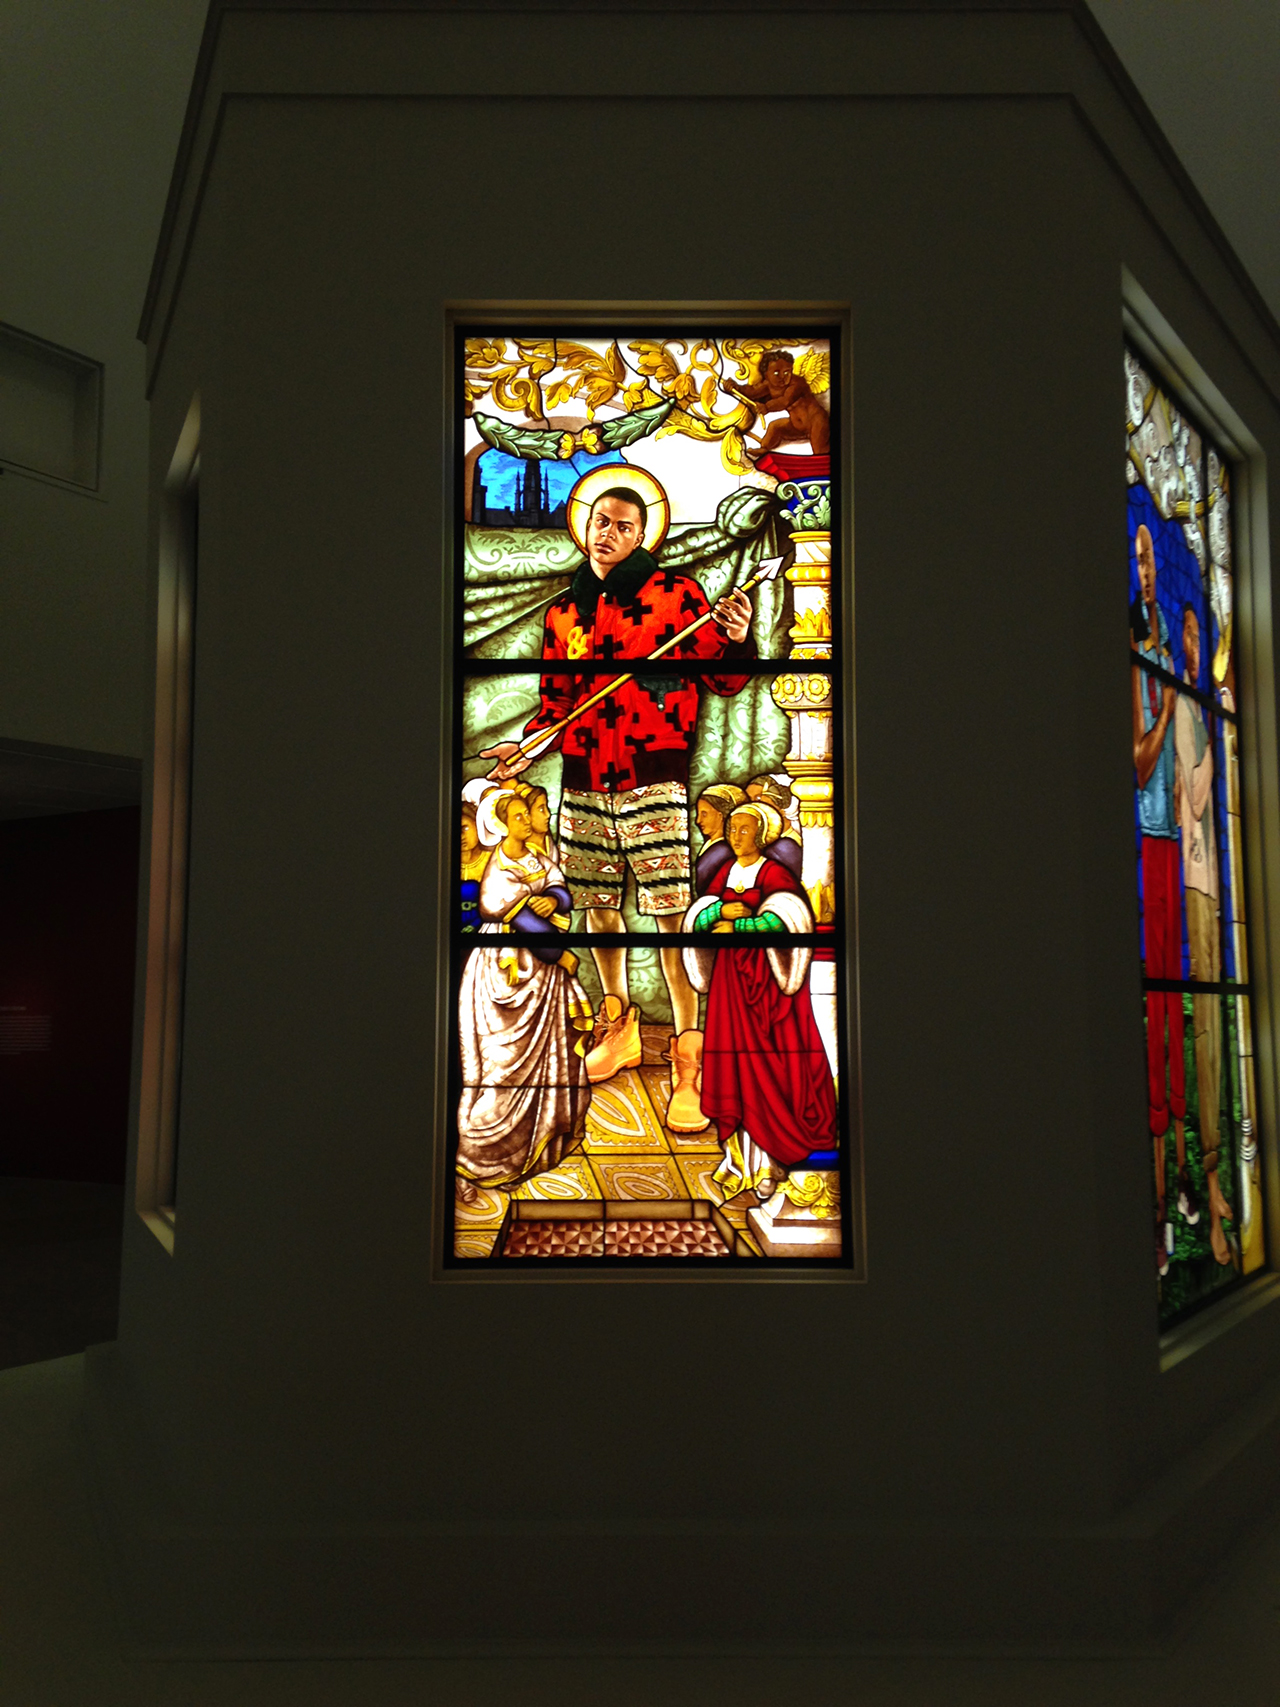 "Kehinde Wiley, ""Saint Ursula and the Virgin Martyrs"" (2014), stained glass (photo by Jillian Steinhauer/Hyperallergic) (click to enlarge)"